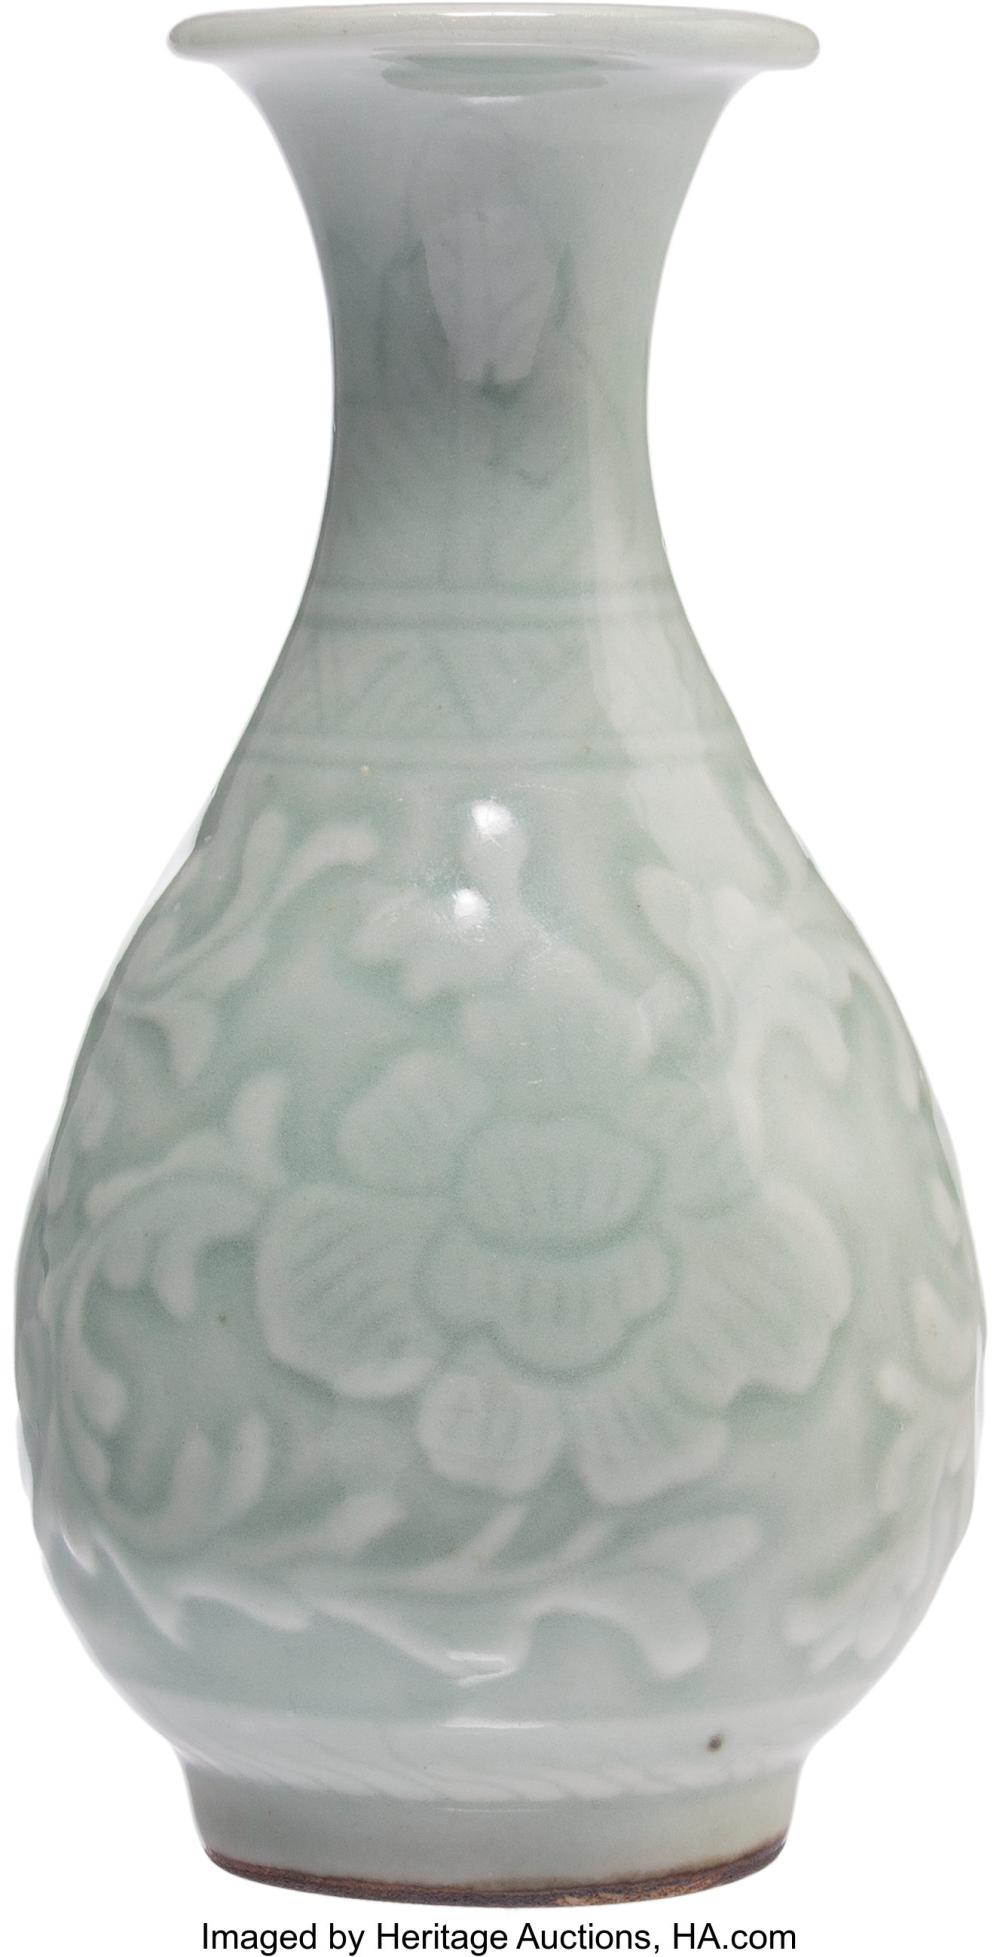 Lot 21300: A Chinese Song-Style Celadon Porcelain Yuhuchunping Vase, Qing Dynasty, 18th cen